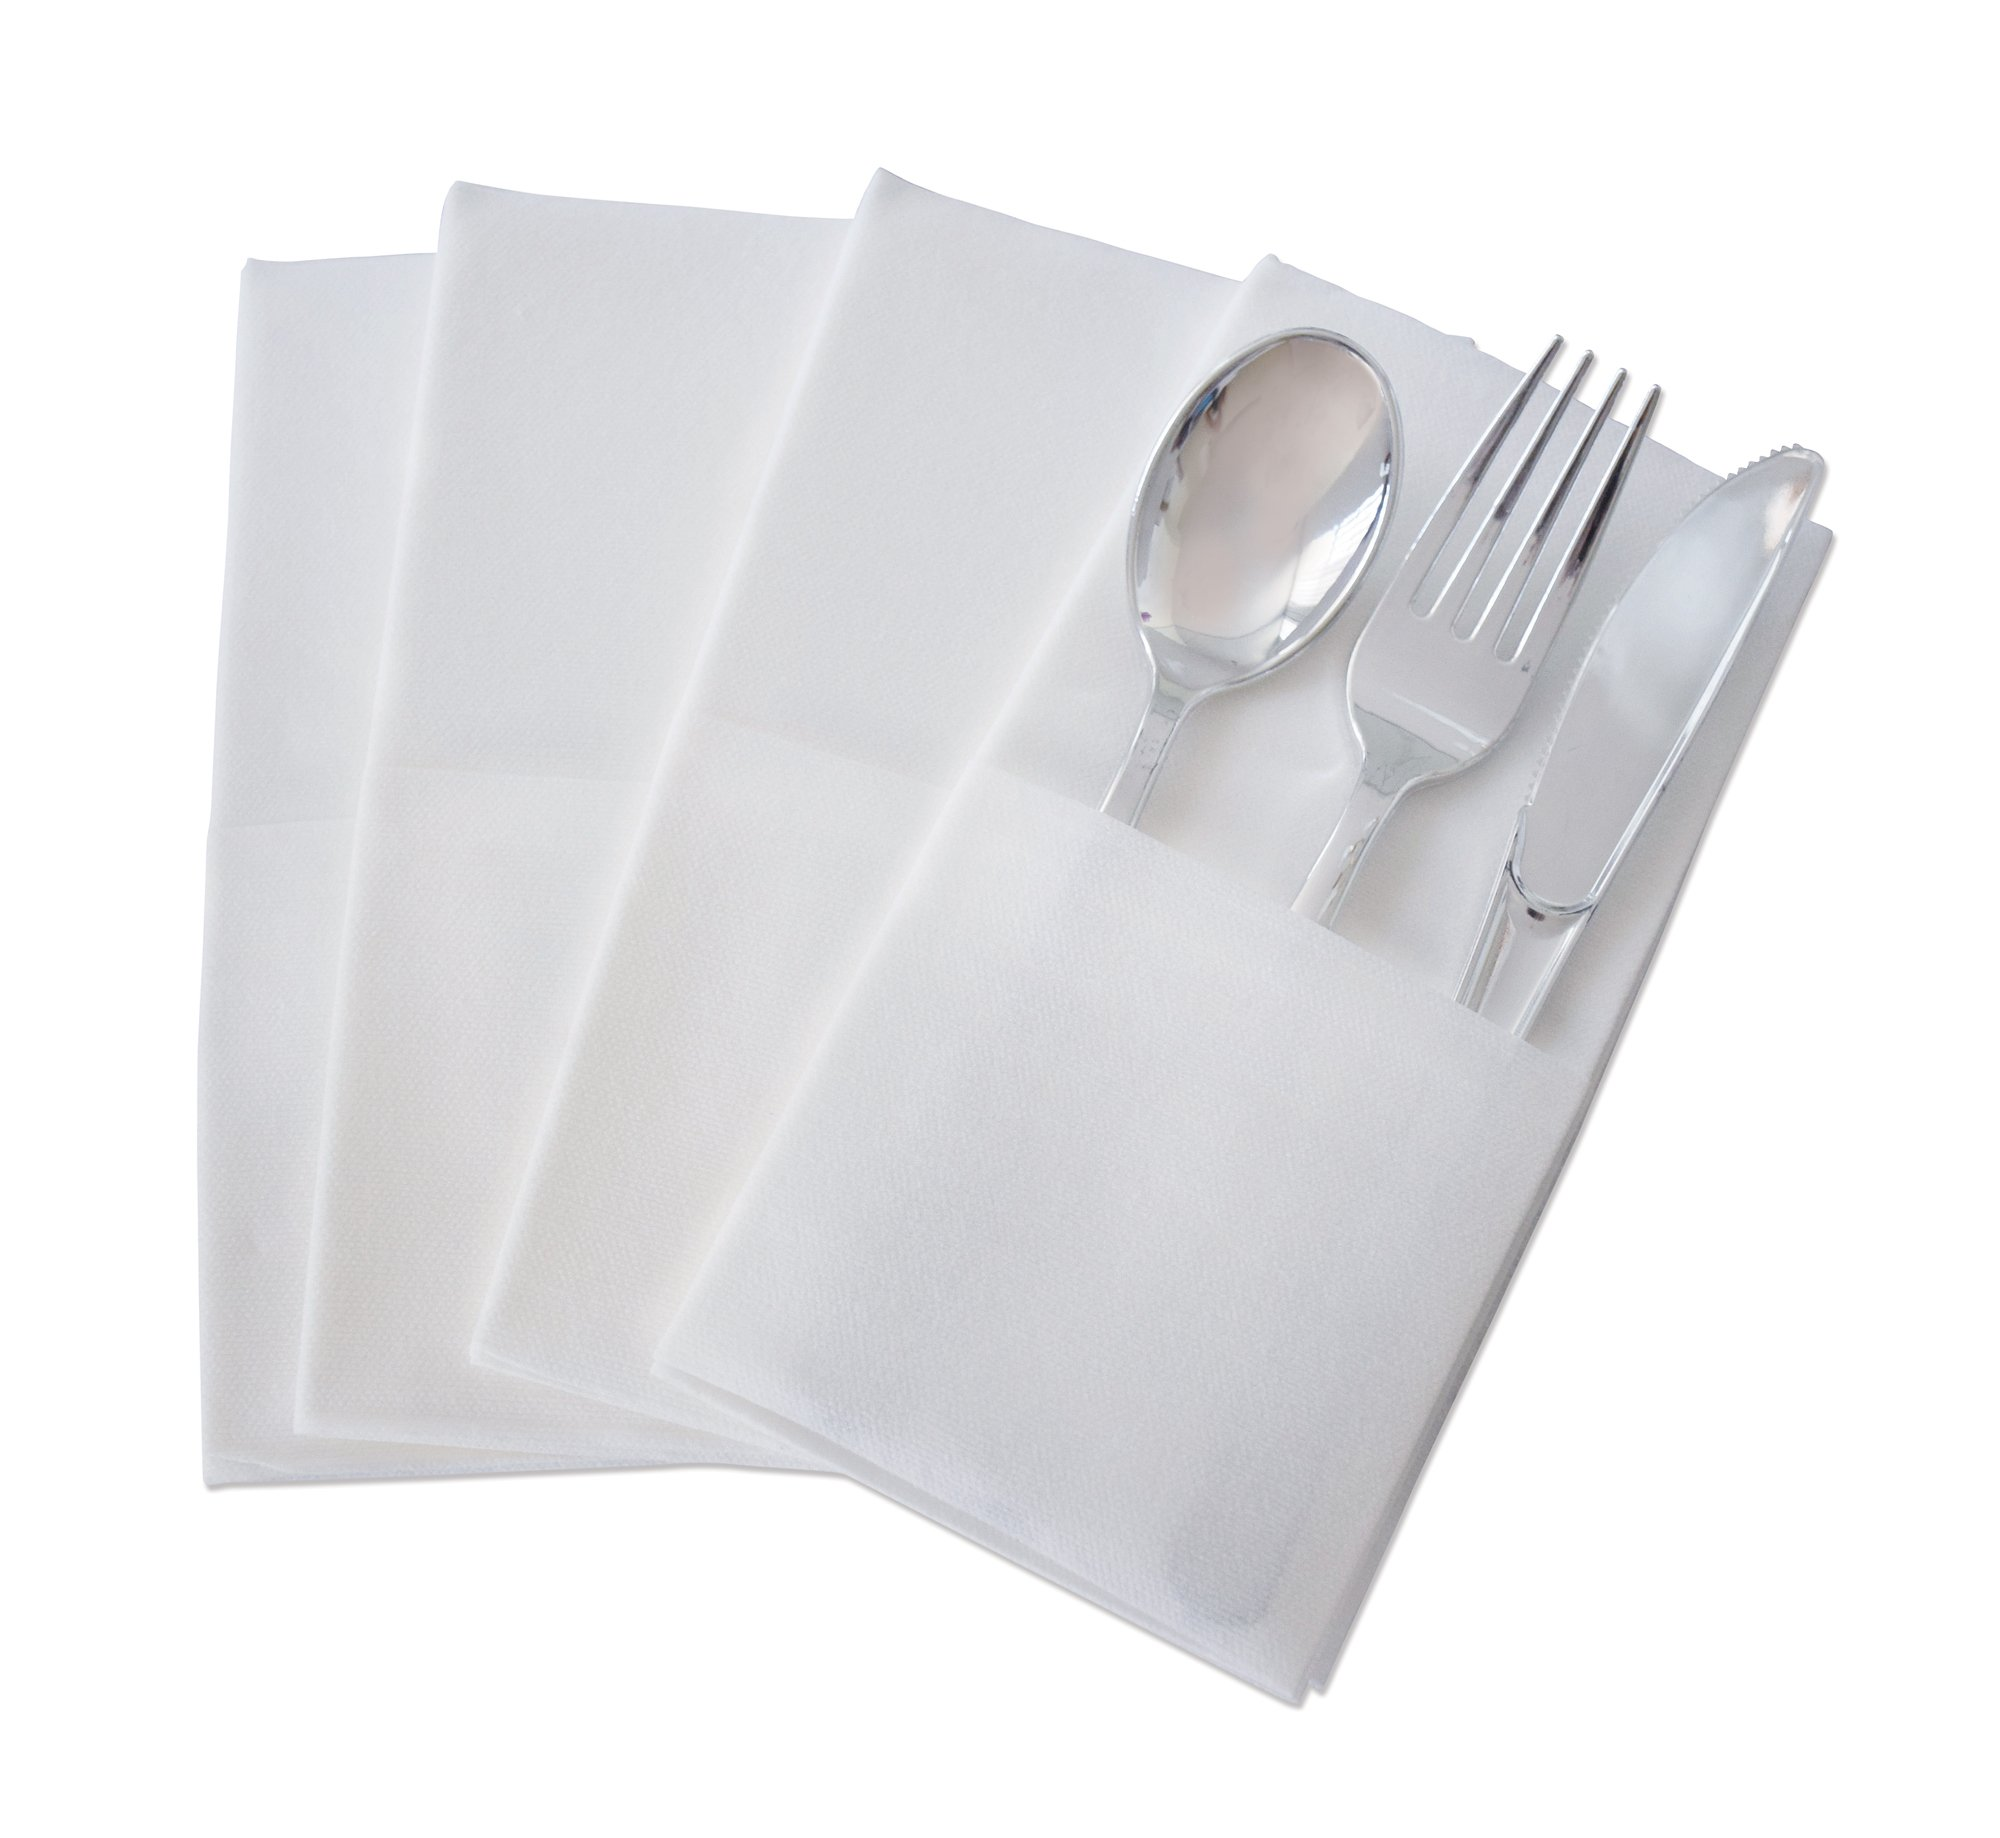 '' OCCASIONS'' Wedding Party Linen Feel White Dinner Paper Napkins (240, Prefolded for Silverware) by OCCASIONS FINEST PLASTIC TABLEWARE (Image #1)